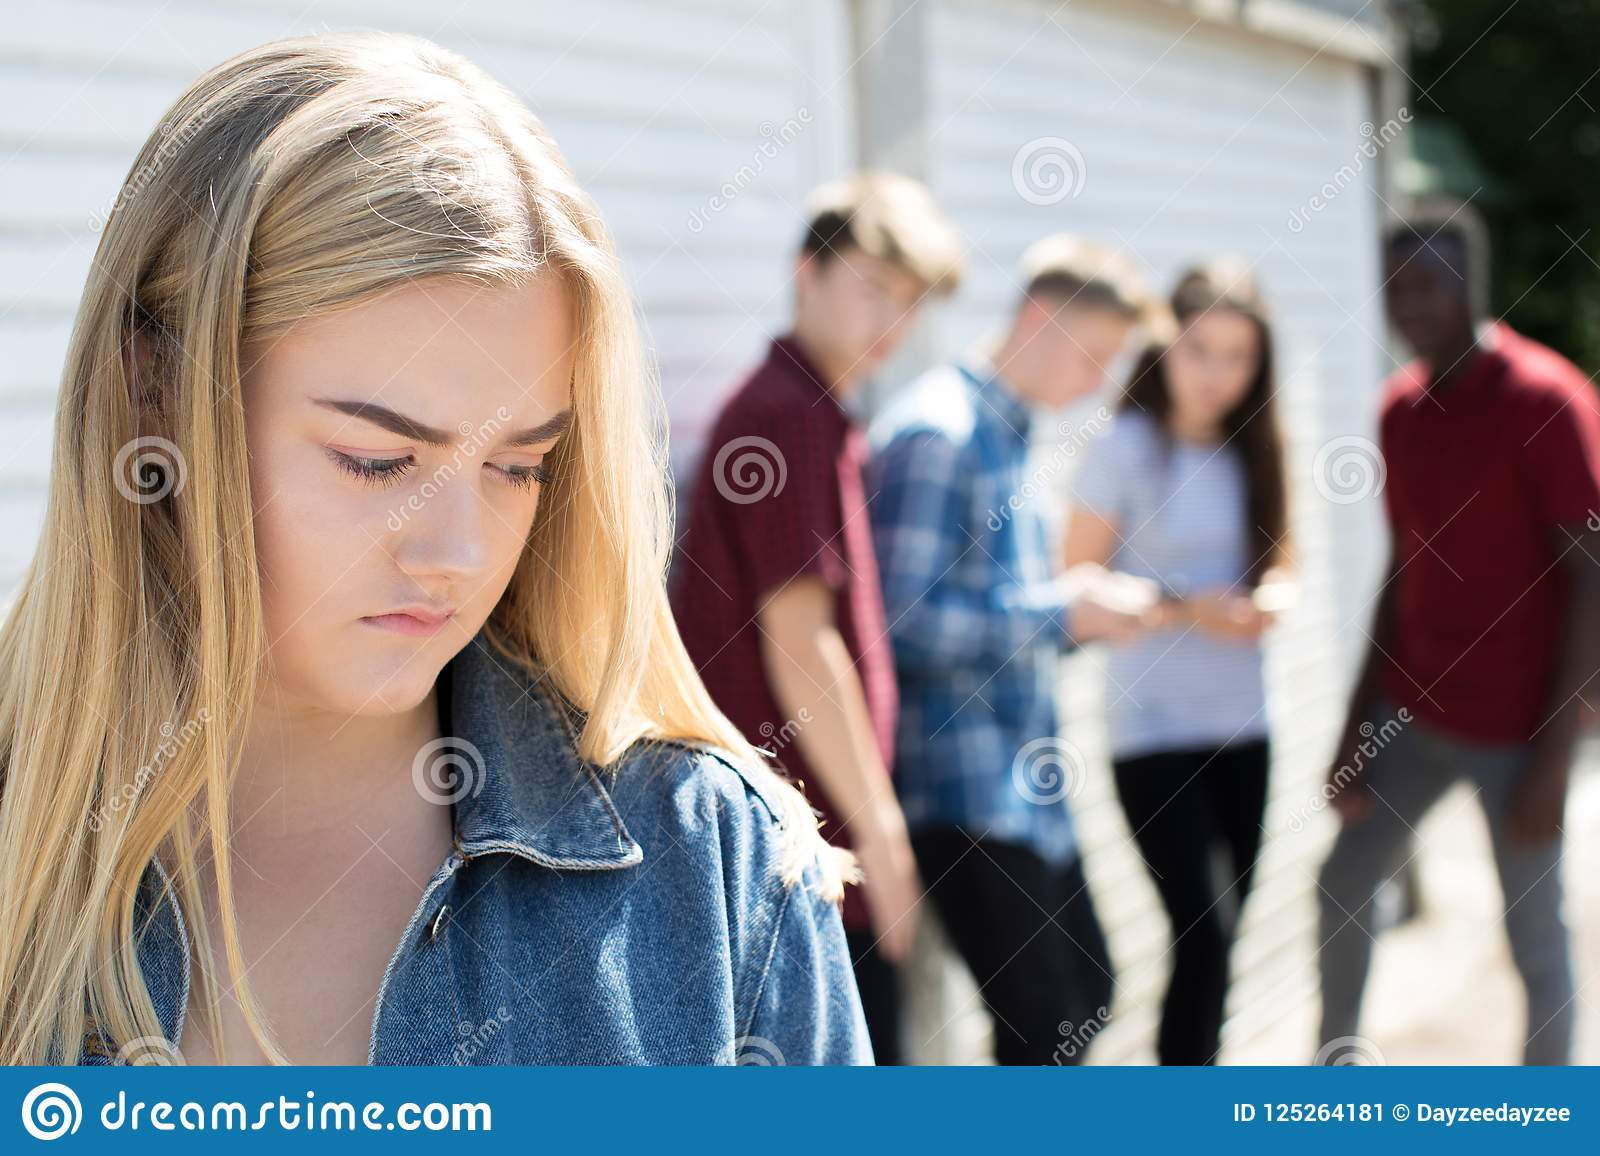 Unhappy Teenage Girl Being Gossiped About By Peers